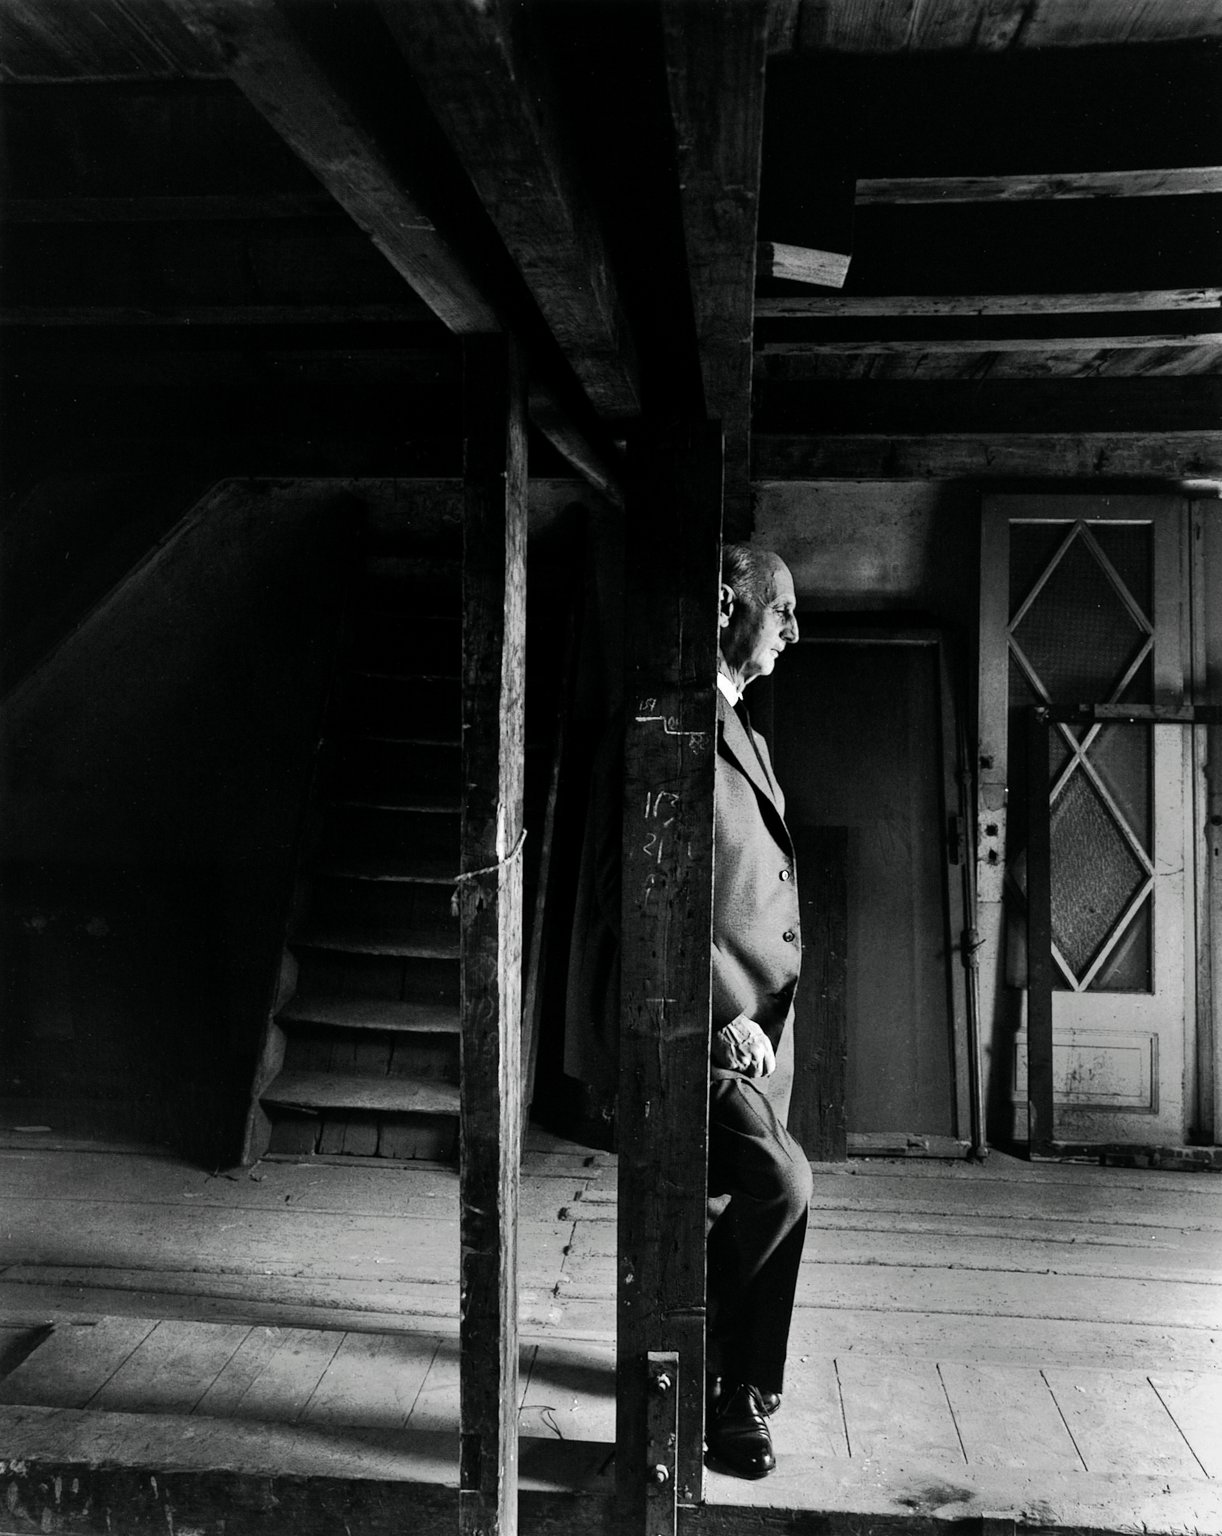 Otto Frank in the attic of the Secret Annex, a few hours before the official opening of the Anne Frank House on 3 May 1960.